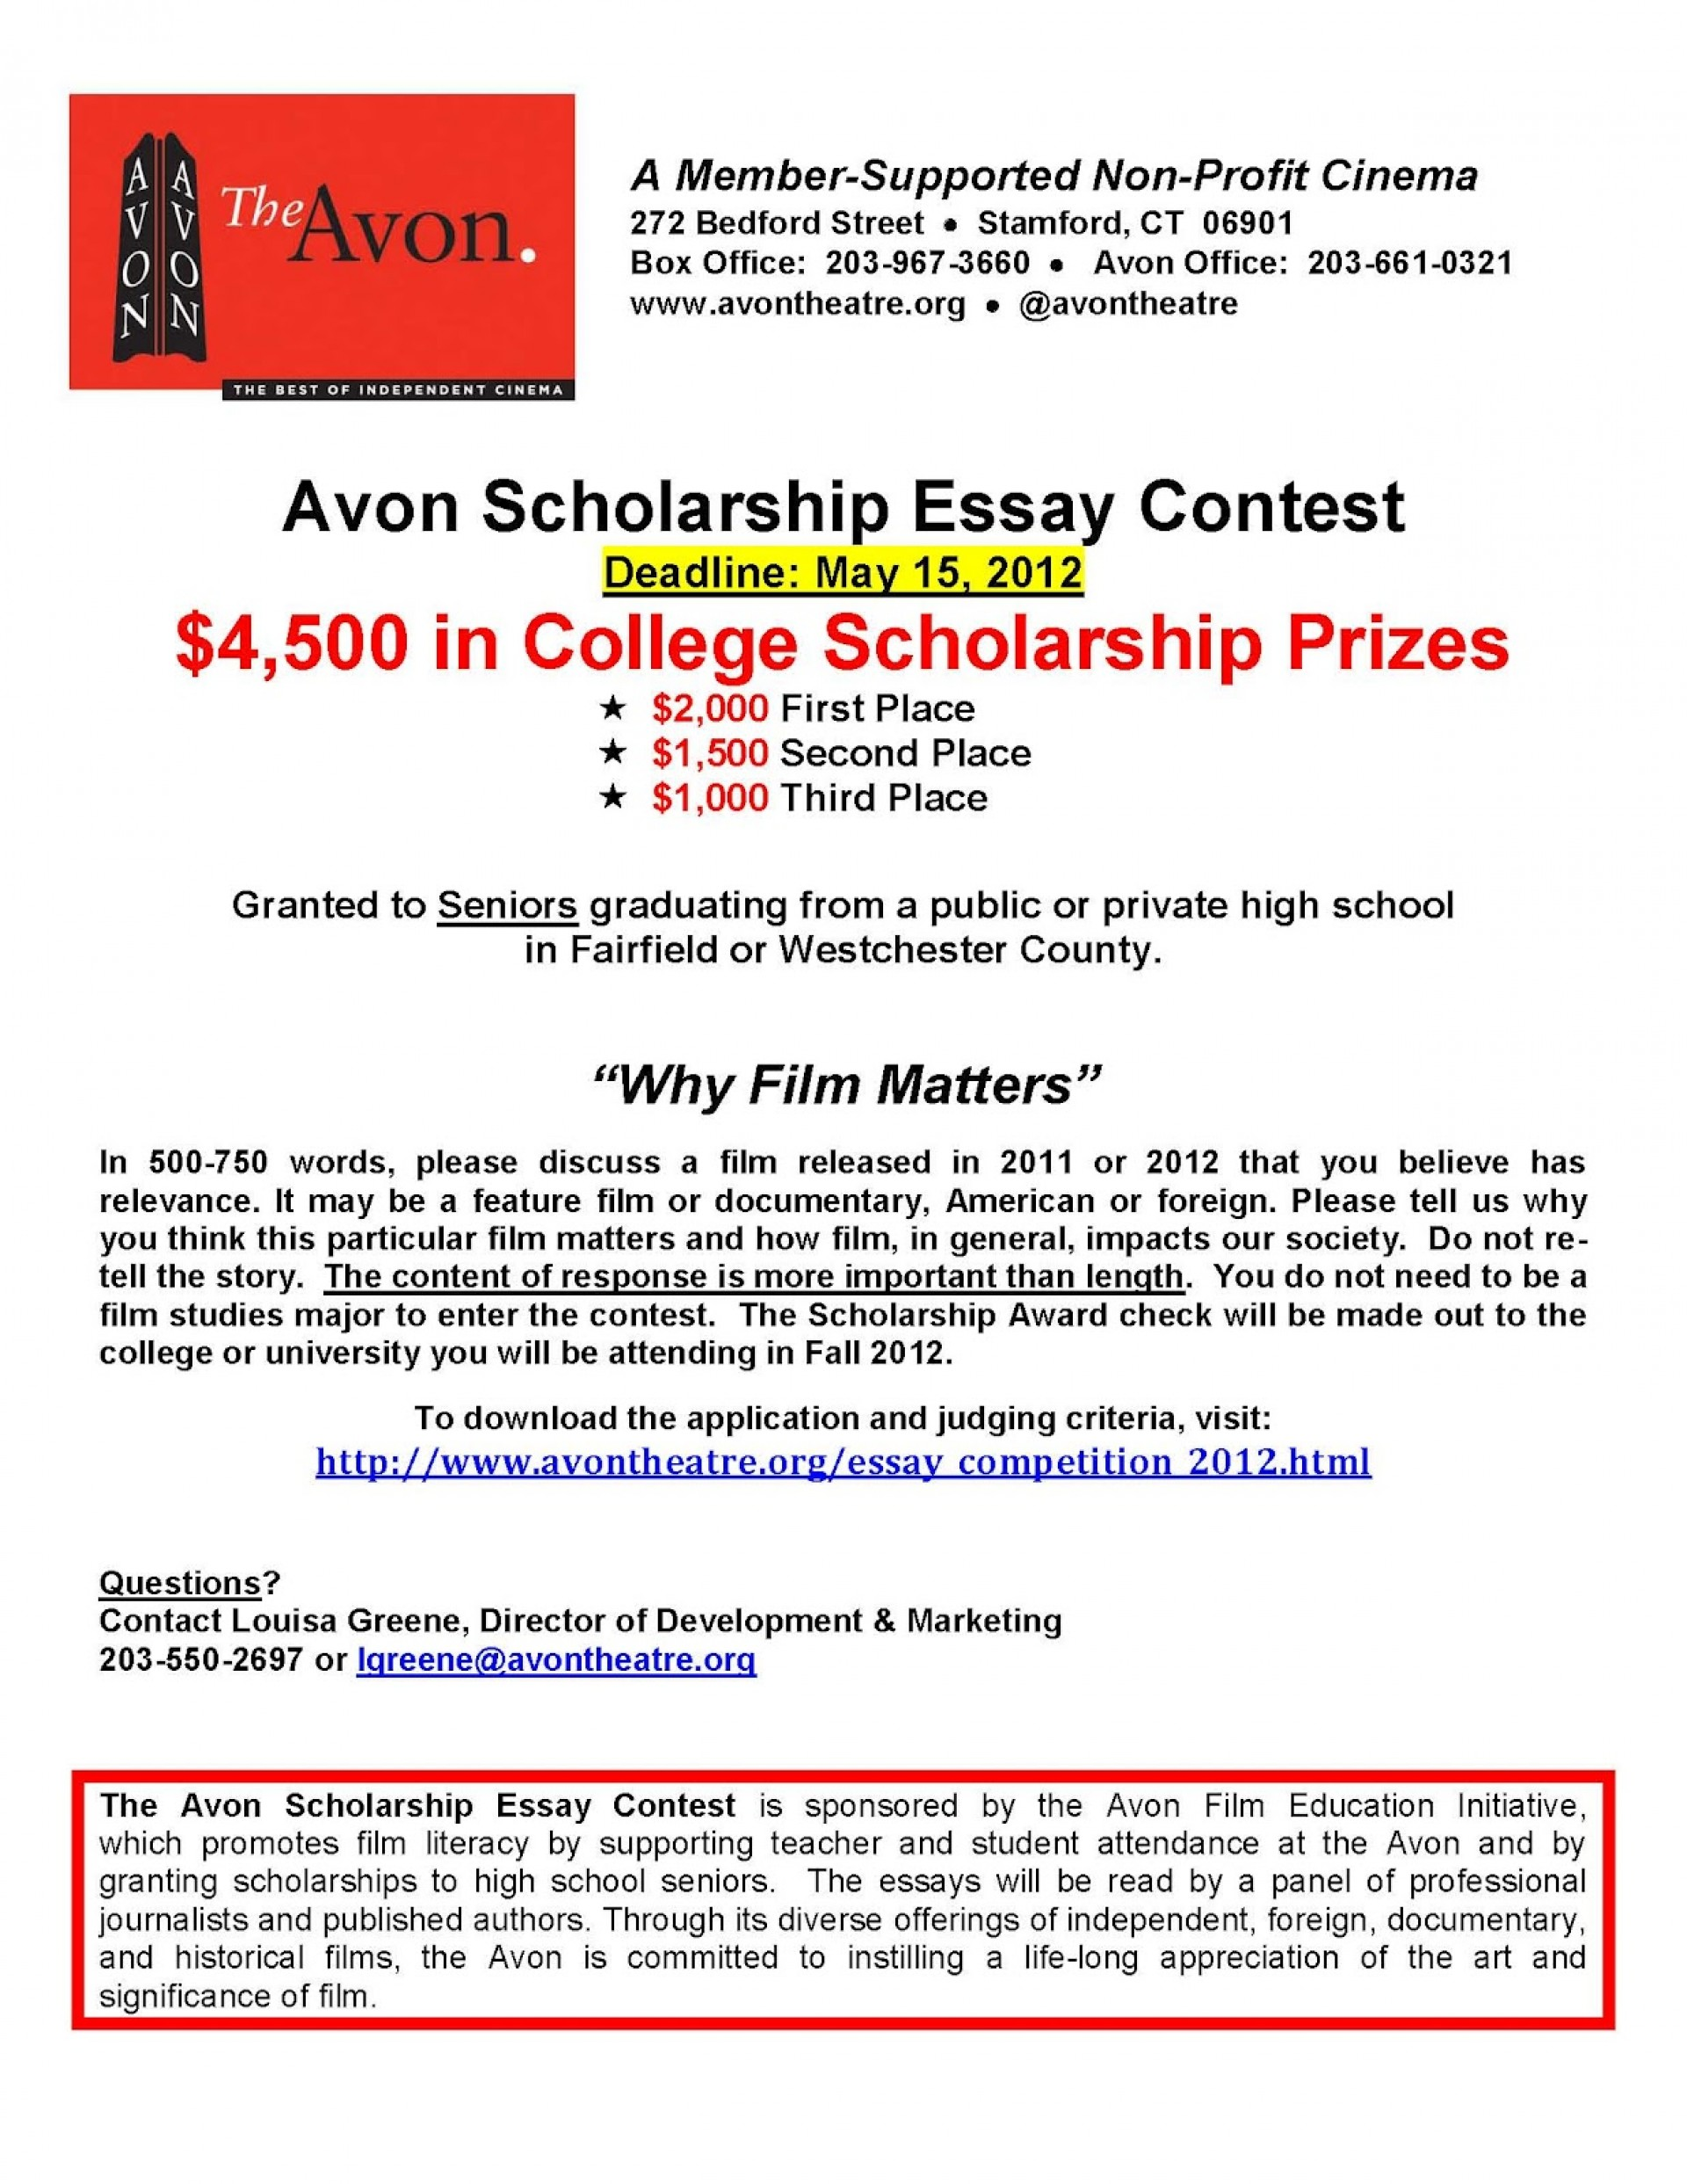 003 No Essay College Scholarship Prowler Free Scholarships For High School Seniors Avonscholarshipessaycontest2012 In Texas California Class Of Short Unbelievable With Without Requirements Essays Required 1920